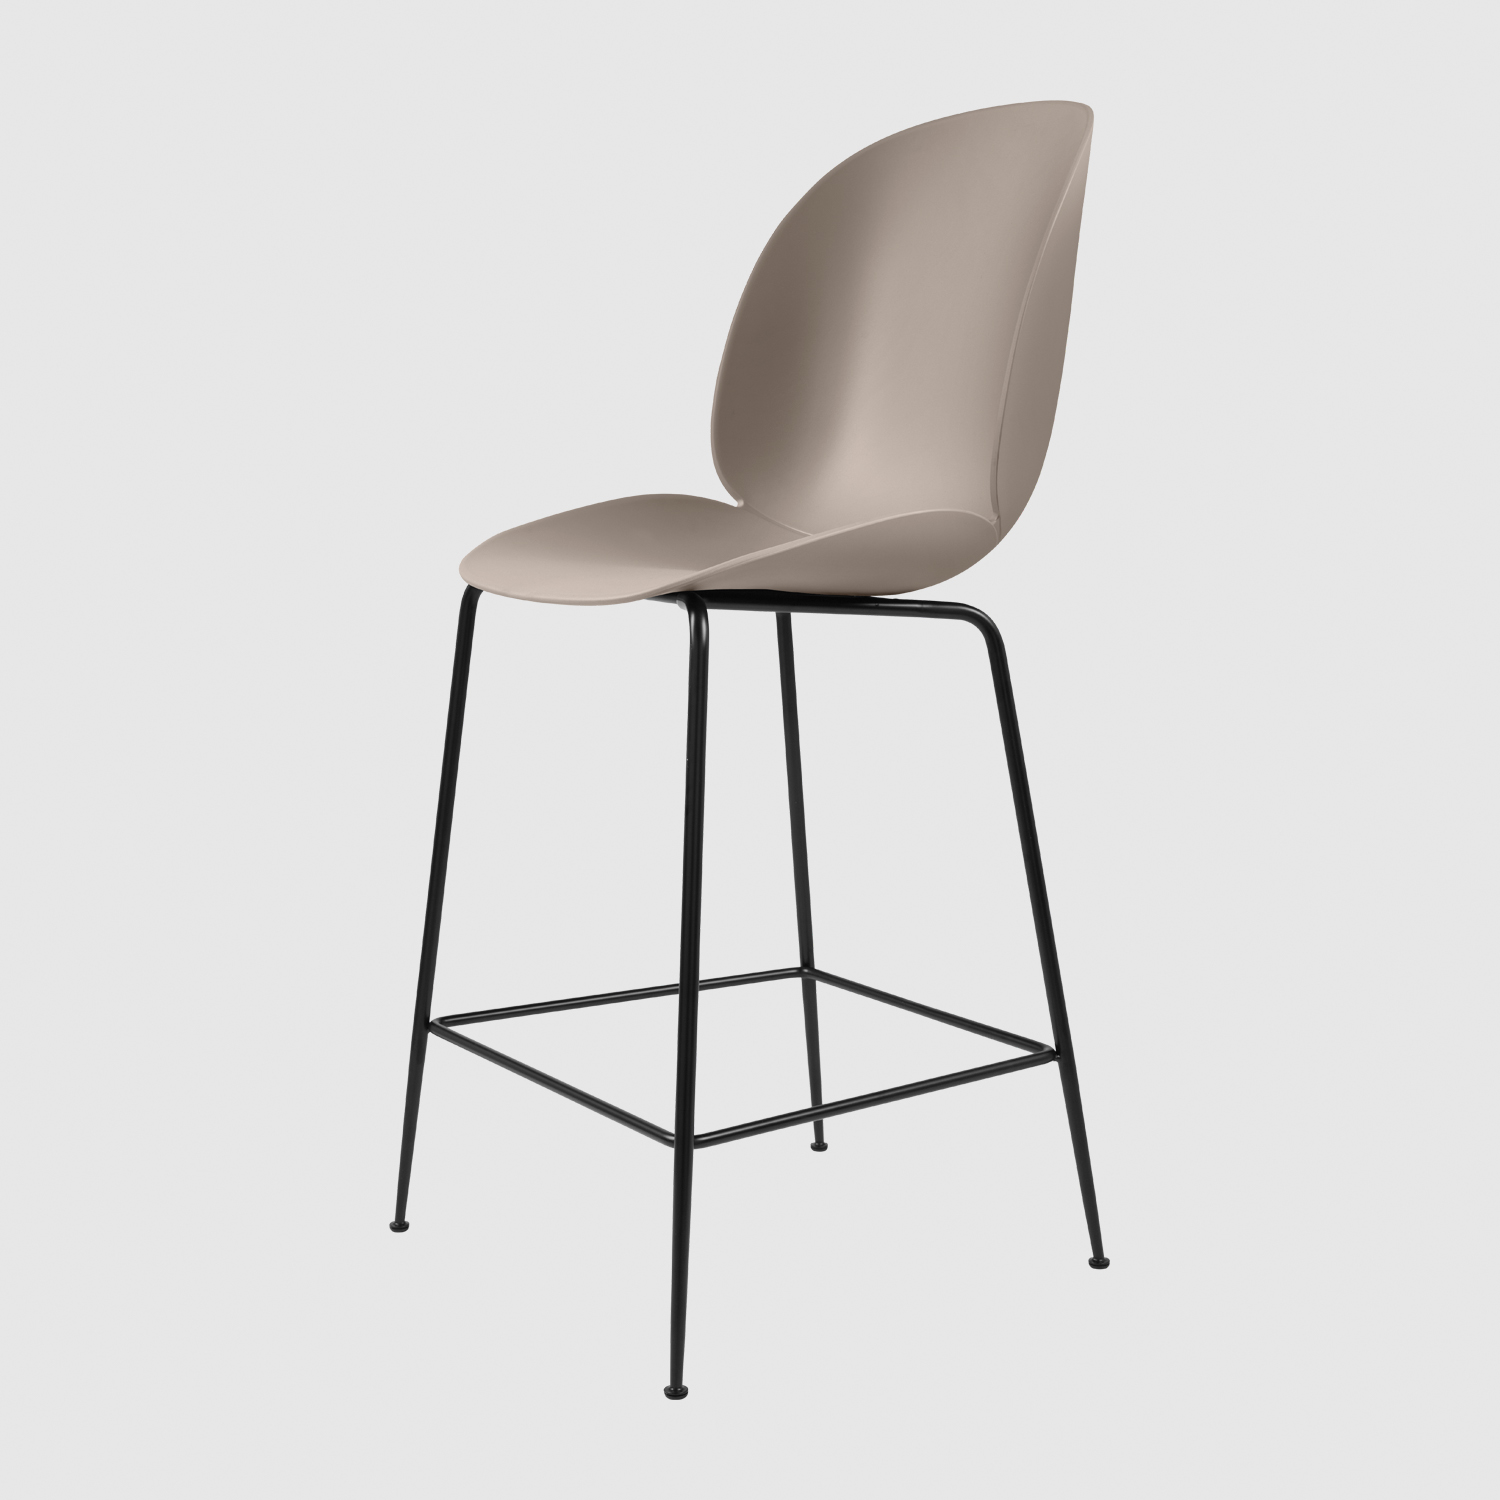 Counter Chair: seating 63cm, 53 x 54 x 108cm